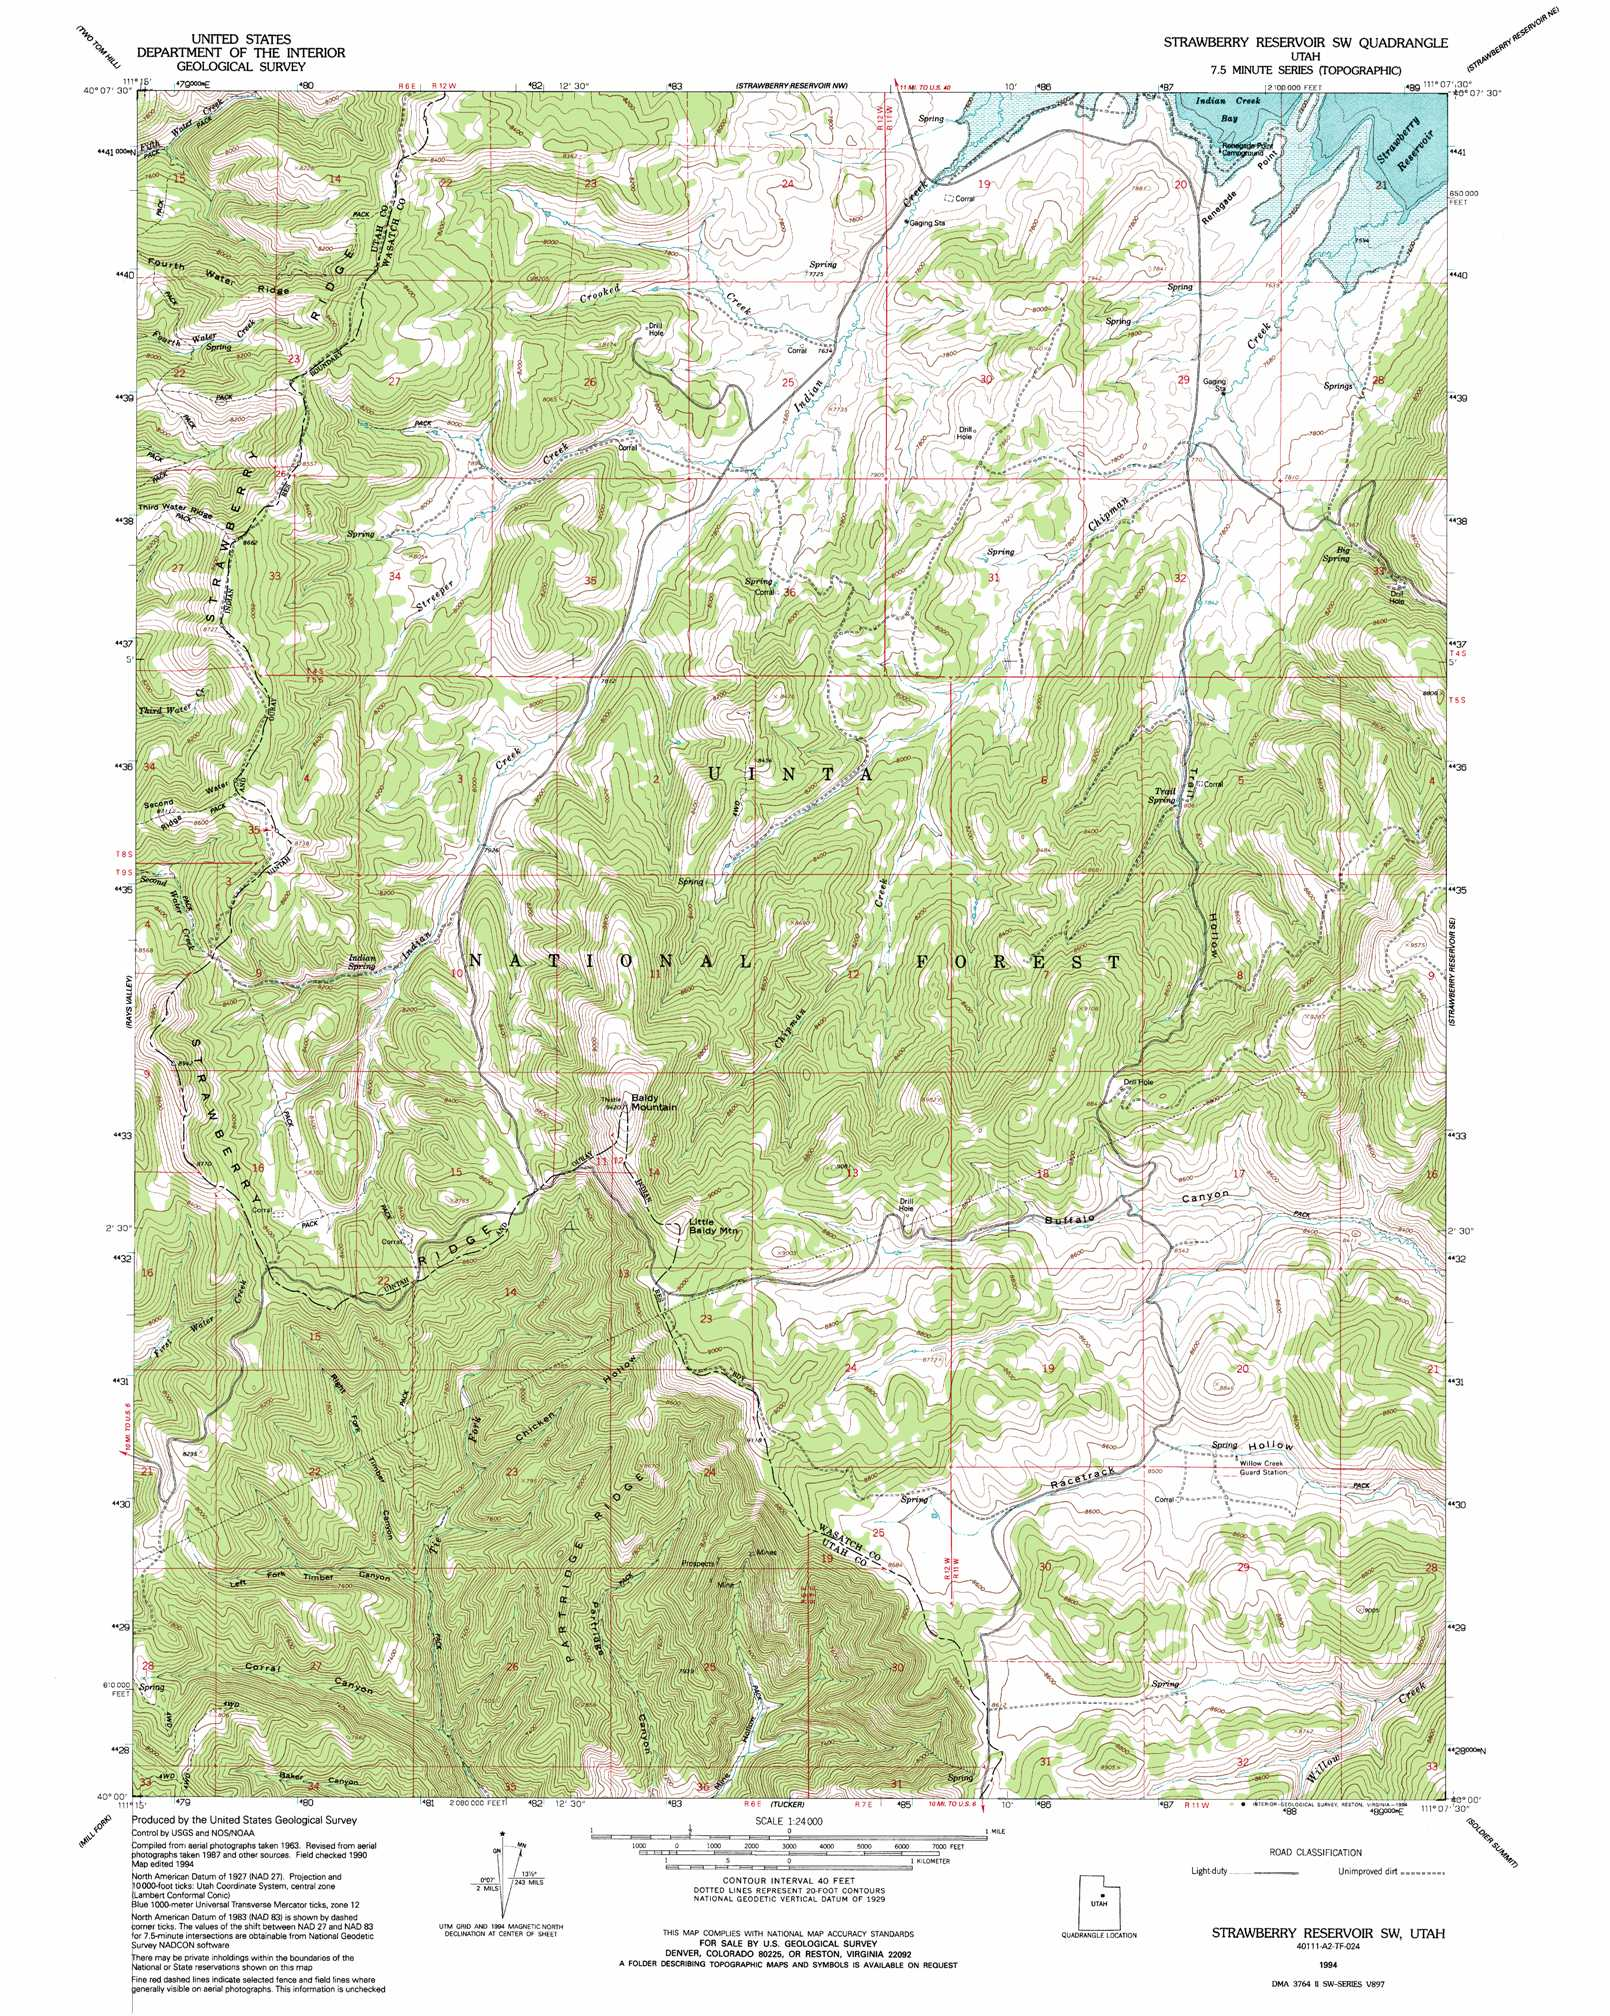 Strawberry Reservoir Sw topographic map UT USGS Topo Quad 40111a2